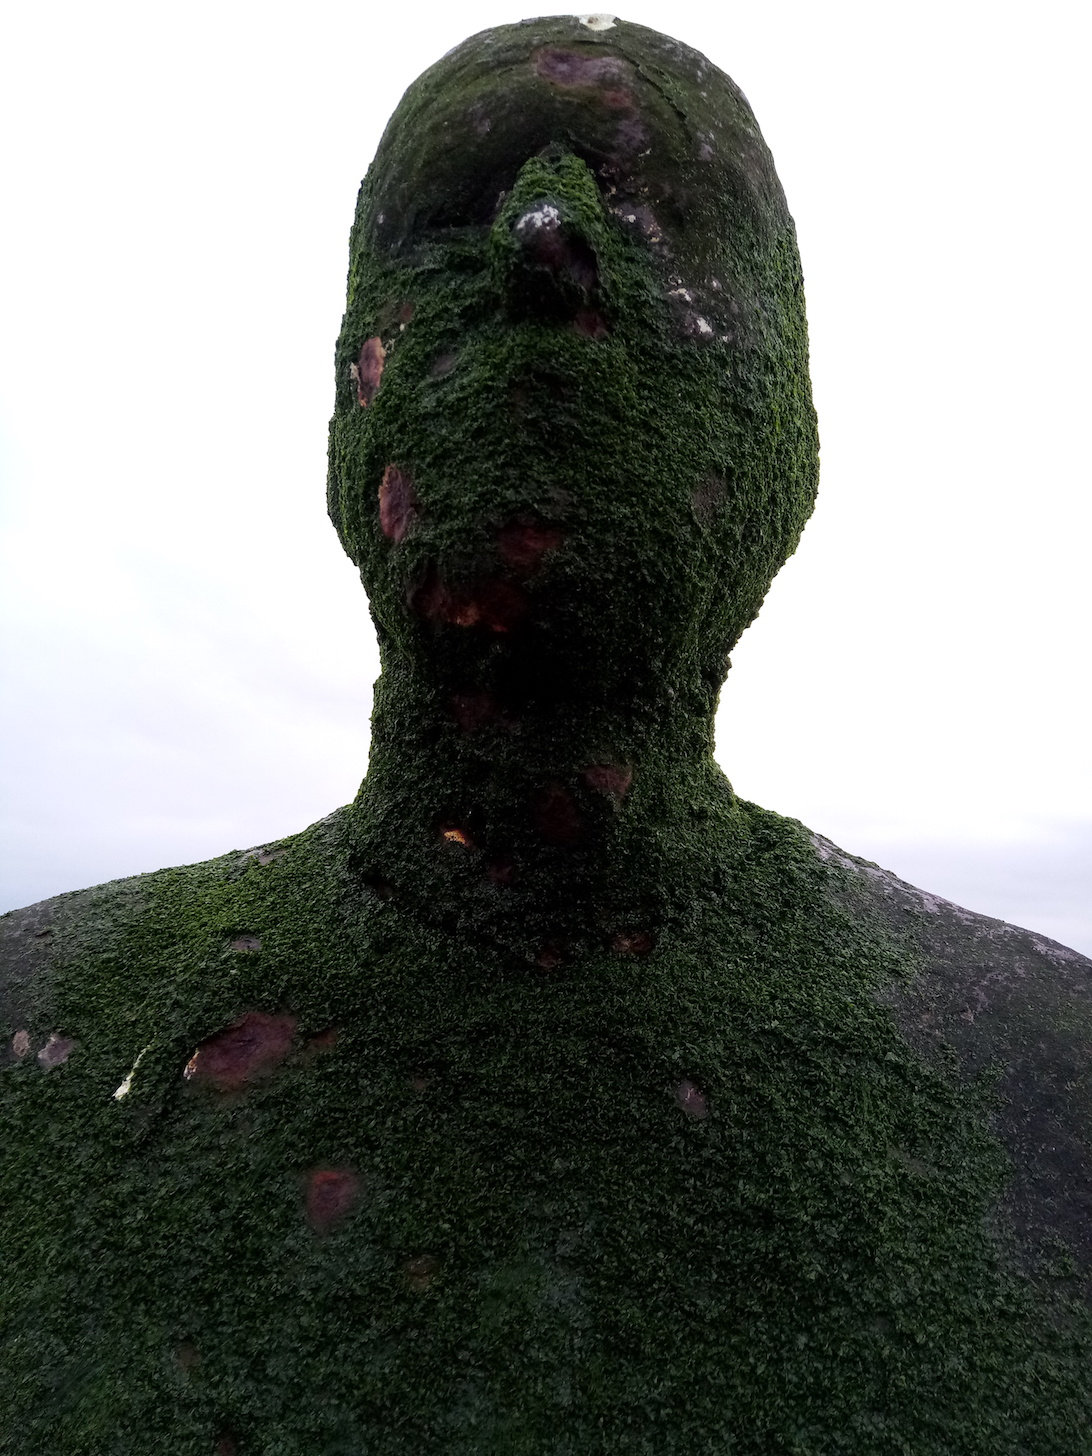 Green Gormley